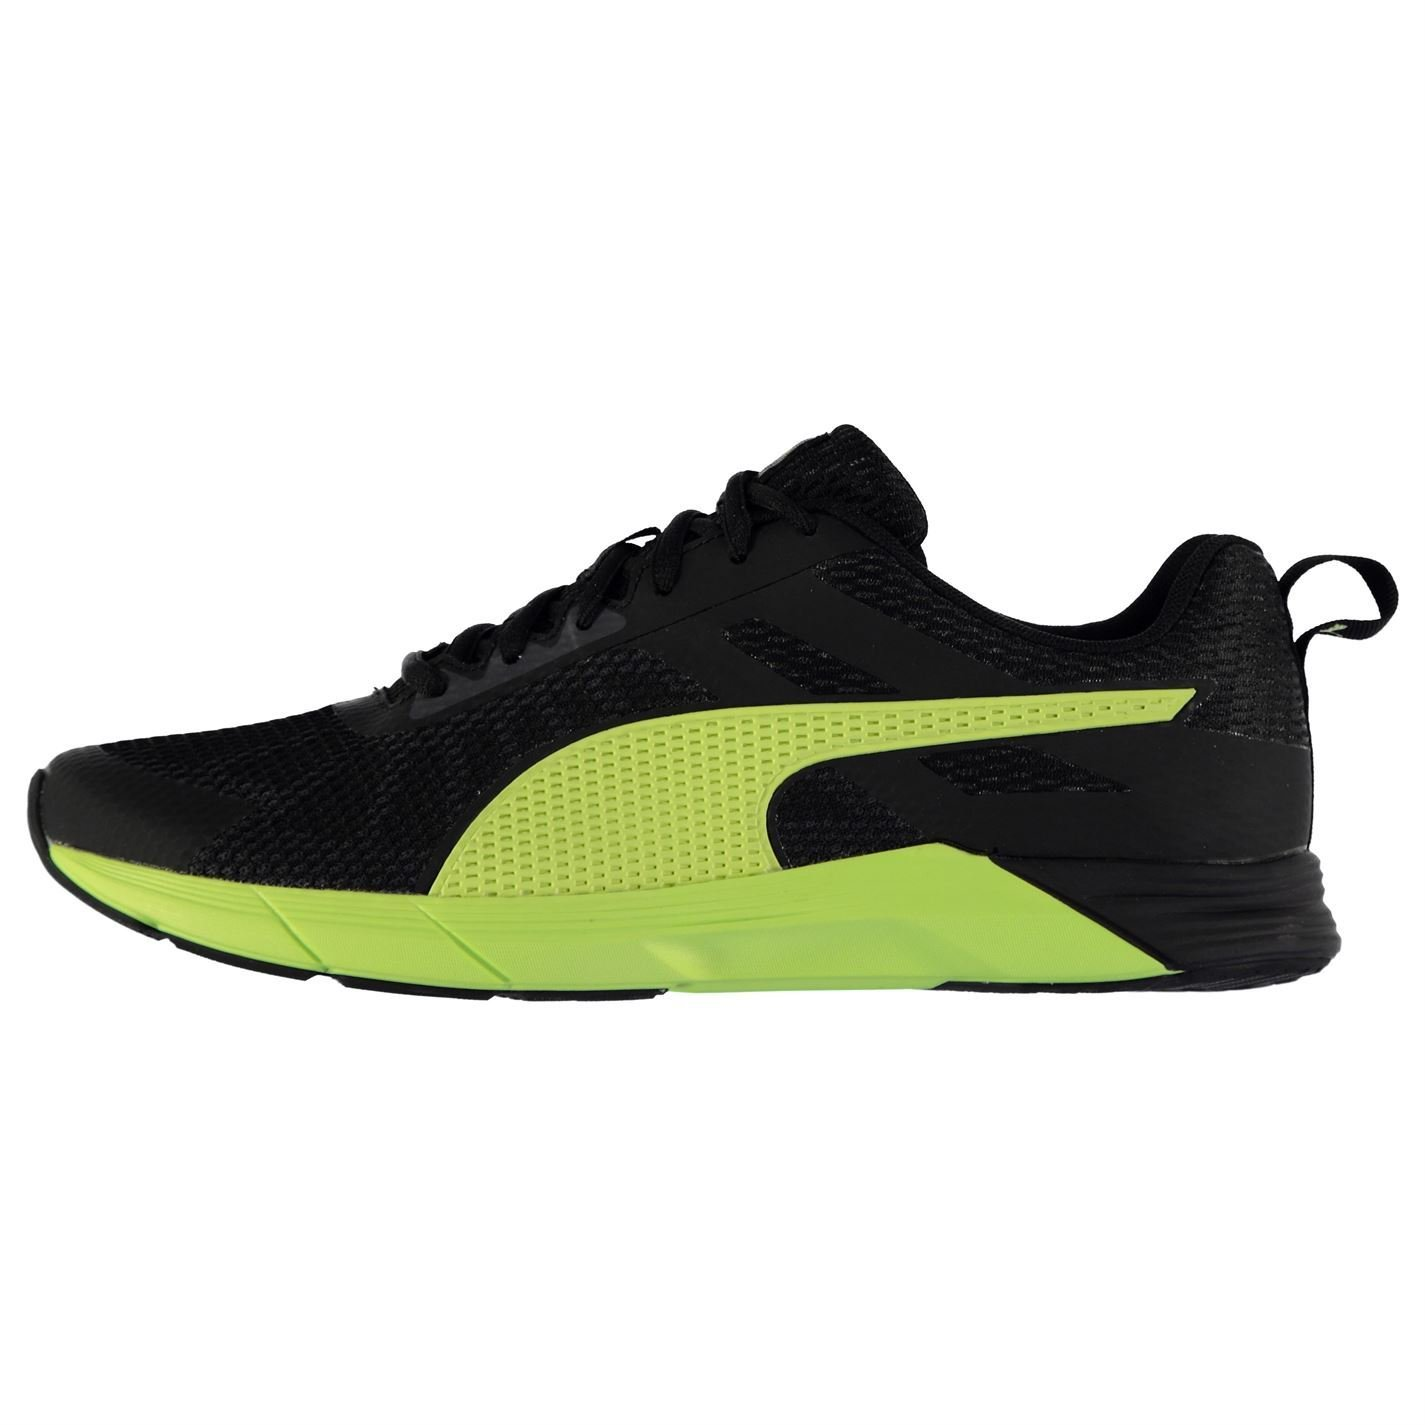 Puma Propel Trainers Mens BlackYellow Athletic Sneakers